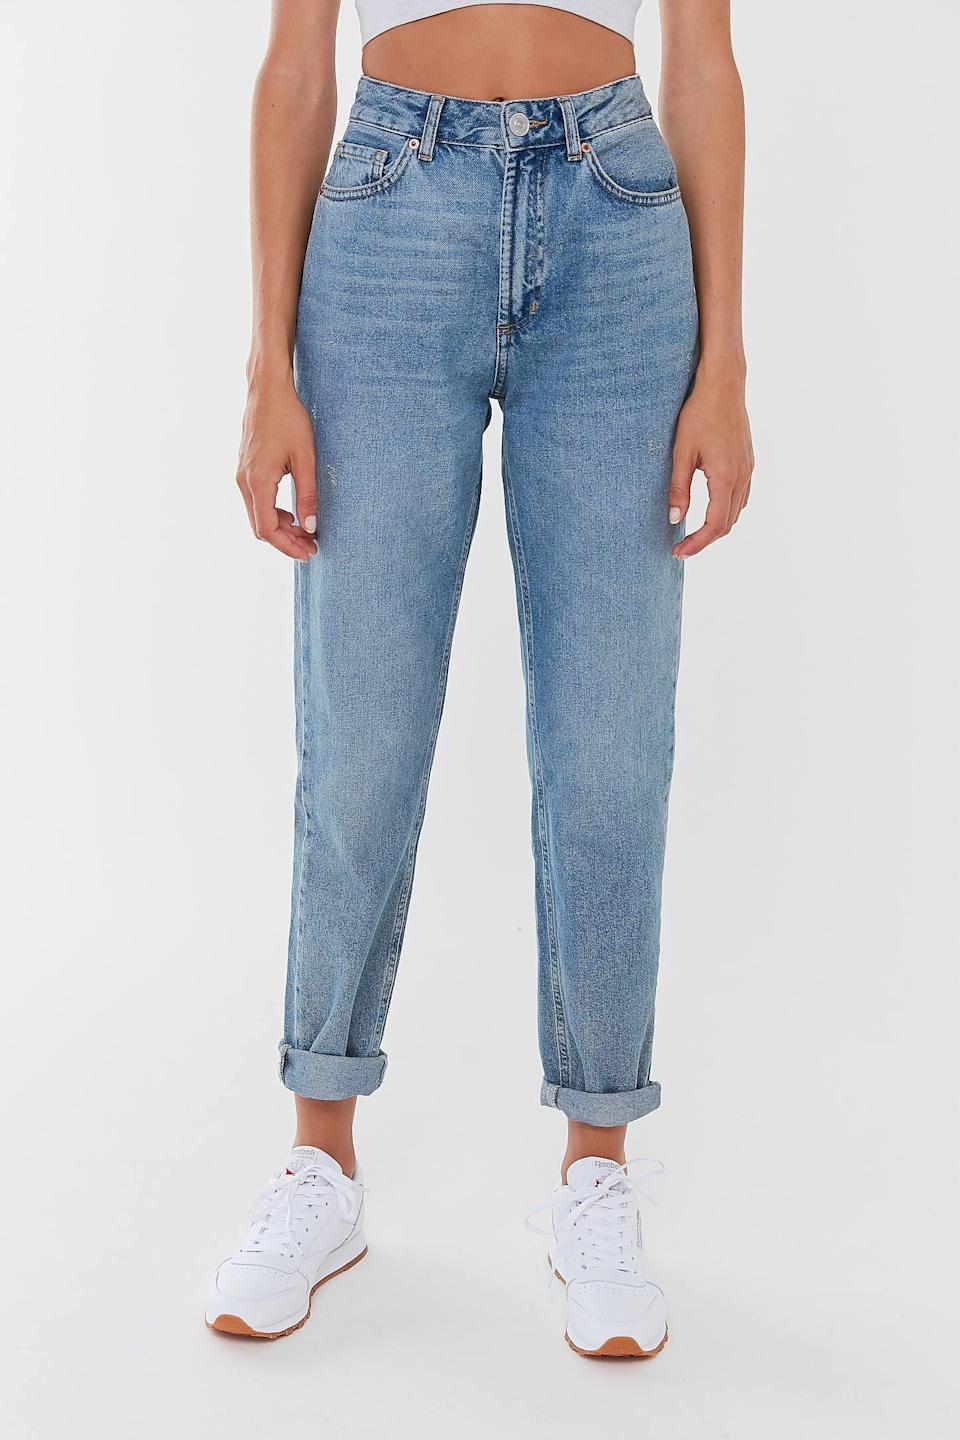 "<p><strong>BDG</strong></p><p>urbanoutfitters.com</p><p><strong>$49.00</strong></p><p><a href=""https://go.redirectingat.com?id=74968X1596630&url=https%3A%2F%2Fwww.urbanoutfitters.com%2Fshop%2Fbdg-high-rise-mom-jean-light-wash2&sref=https%3A%2F%2Fwww.seventeen.com%2Ffashion%2Fg34701248%2Furban-outfitters-2020-black-friday-sale%2F"" rel=""nofollow noopener"" target=""_blank"" data-ylk=""slk:Shop Now"" class=""link rapid-noclick-resp"">Shop Now</a></p><p>*Adds to the pile of jeans I won't wear until 2022.* </p>"